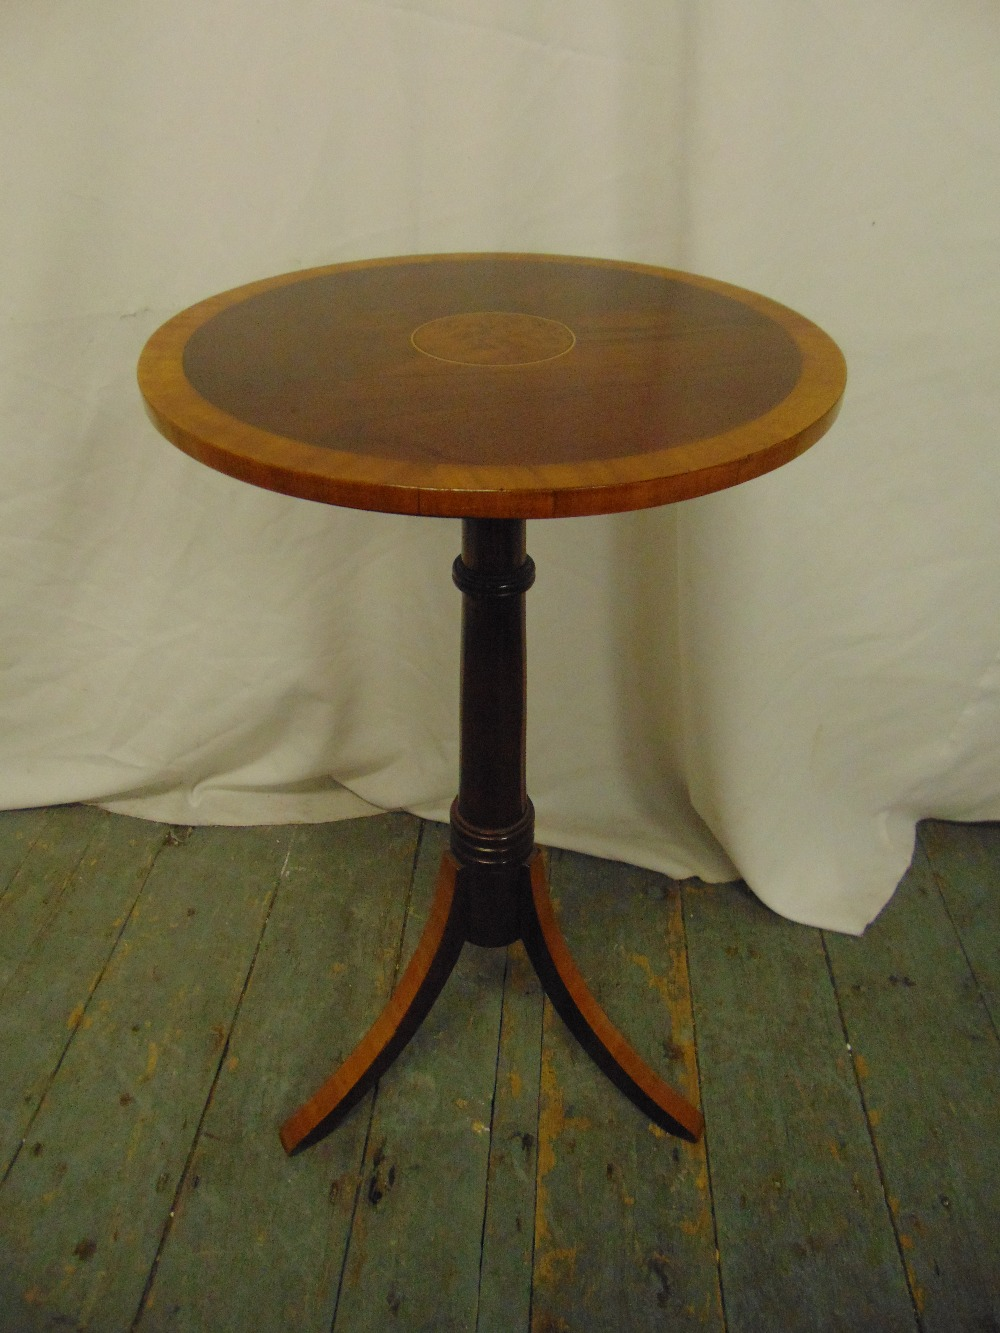 Lot 13 - A mahogany circular side table on three outswept legs